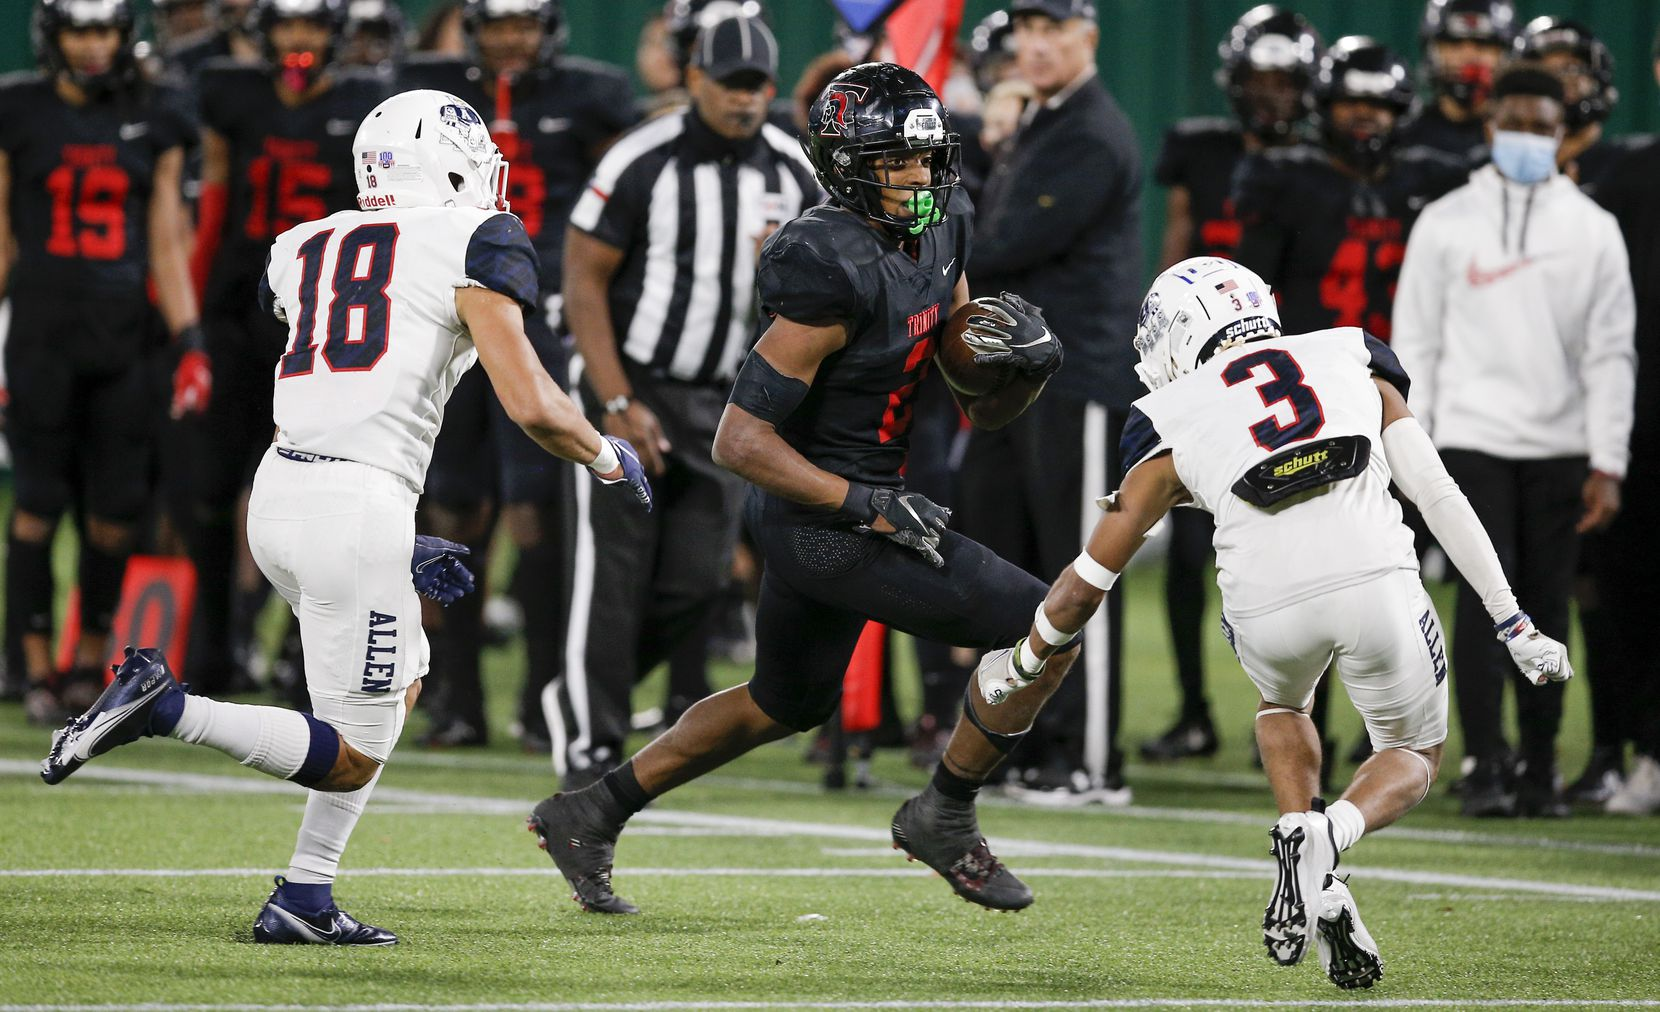 Euless Trinity junior running back Ollie Gordon (2) looks for room against Allen senior defensive back Matthew Tousant (3) and sophomore defensive back Malakai Thornton (18) during the second half of a high school Class 6A Division I Region I semifinal football game at Globe Life Park in Arlington, Saturday, December 26, 2020. Trinity won 49-45. (Brandon Wade/Special Contributor)